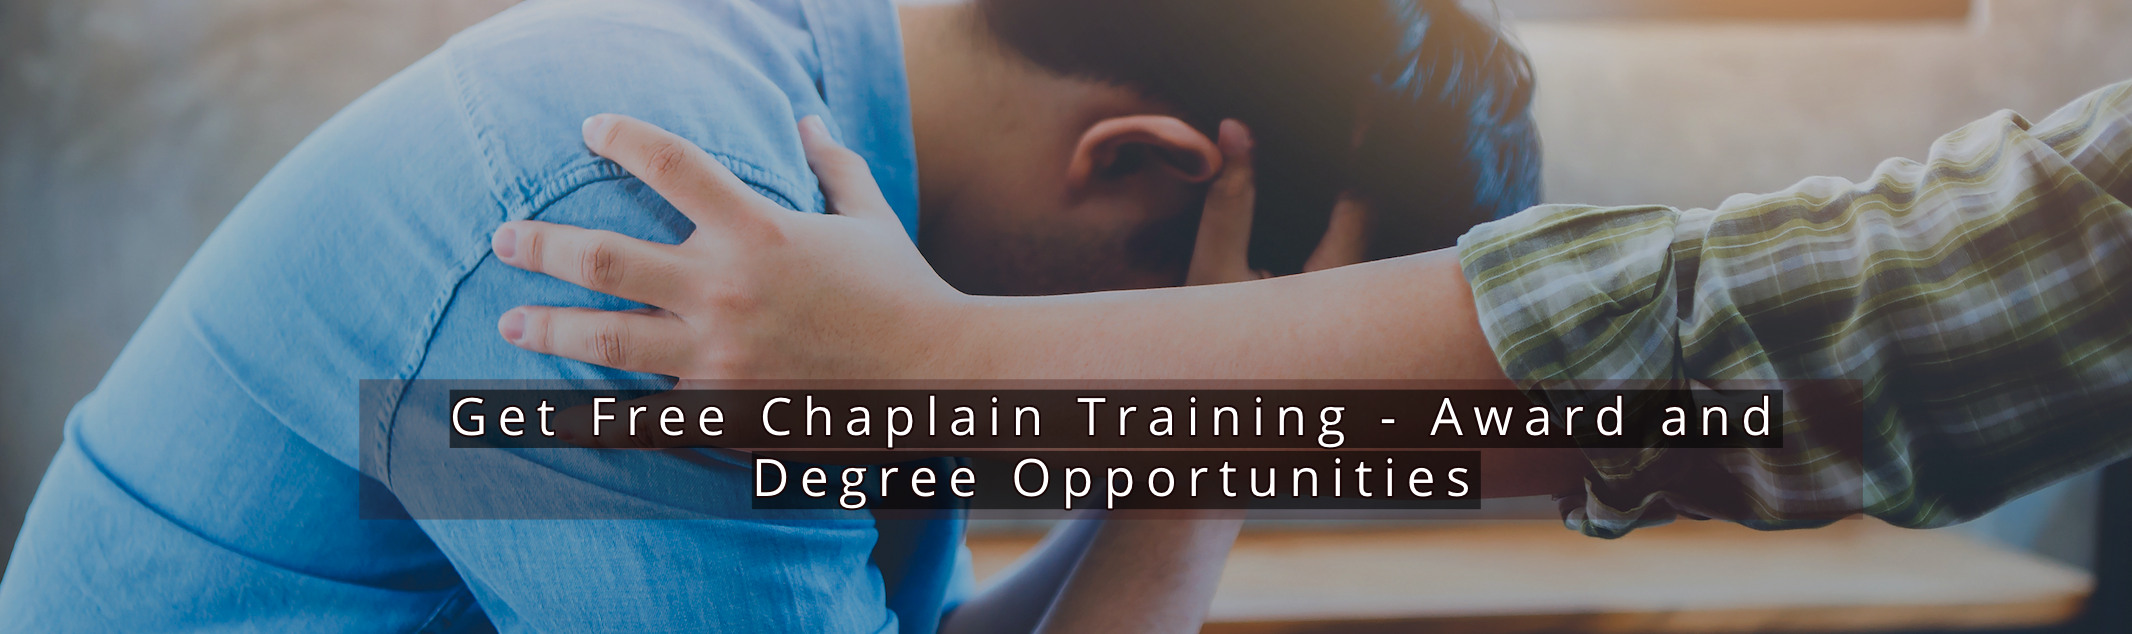 Free Chaplain Training Free Courses With Low Cost Awards And Degrees